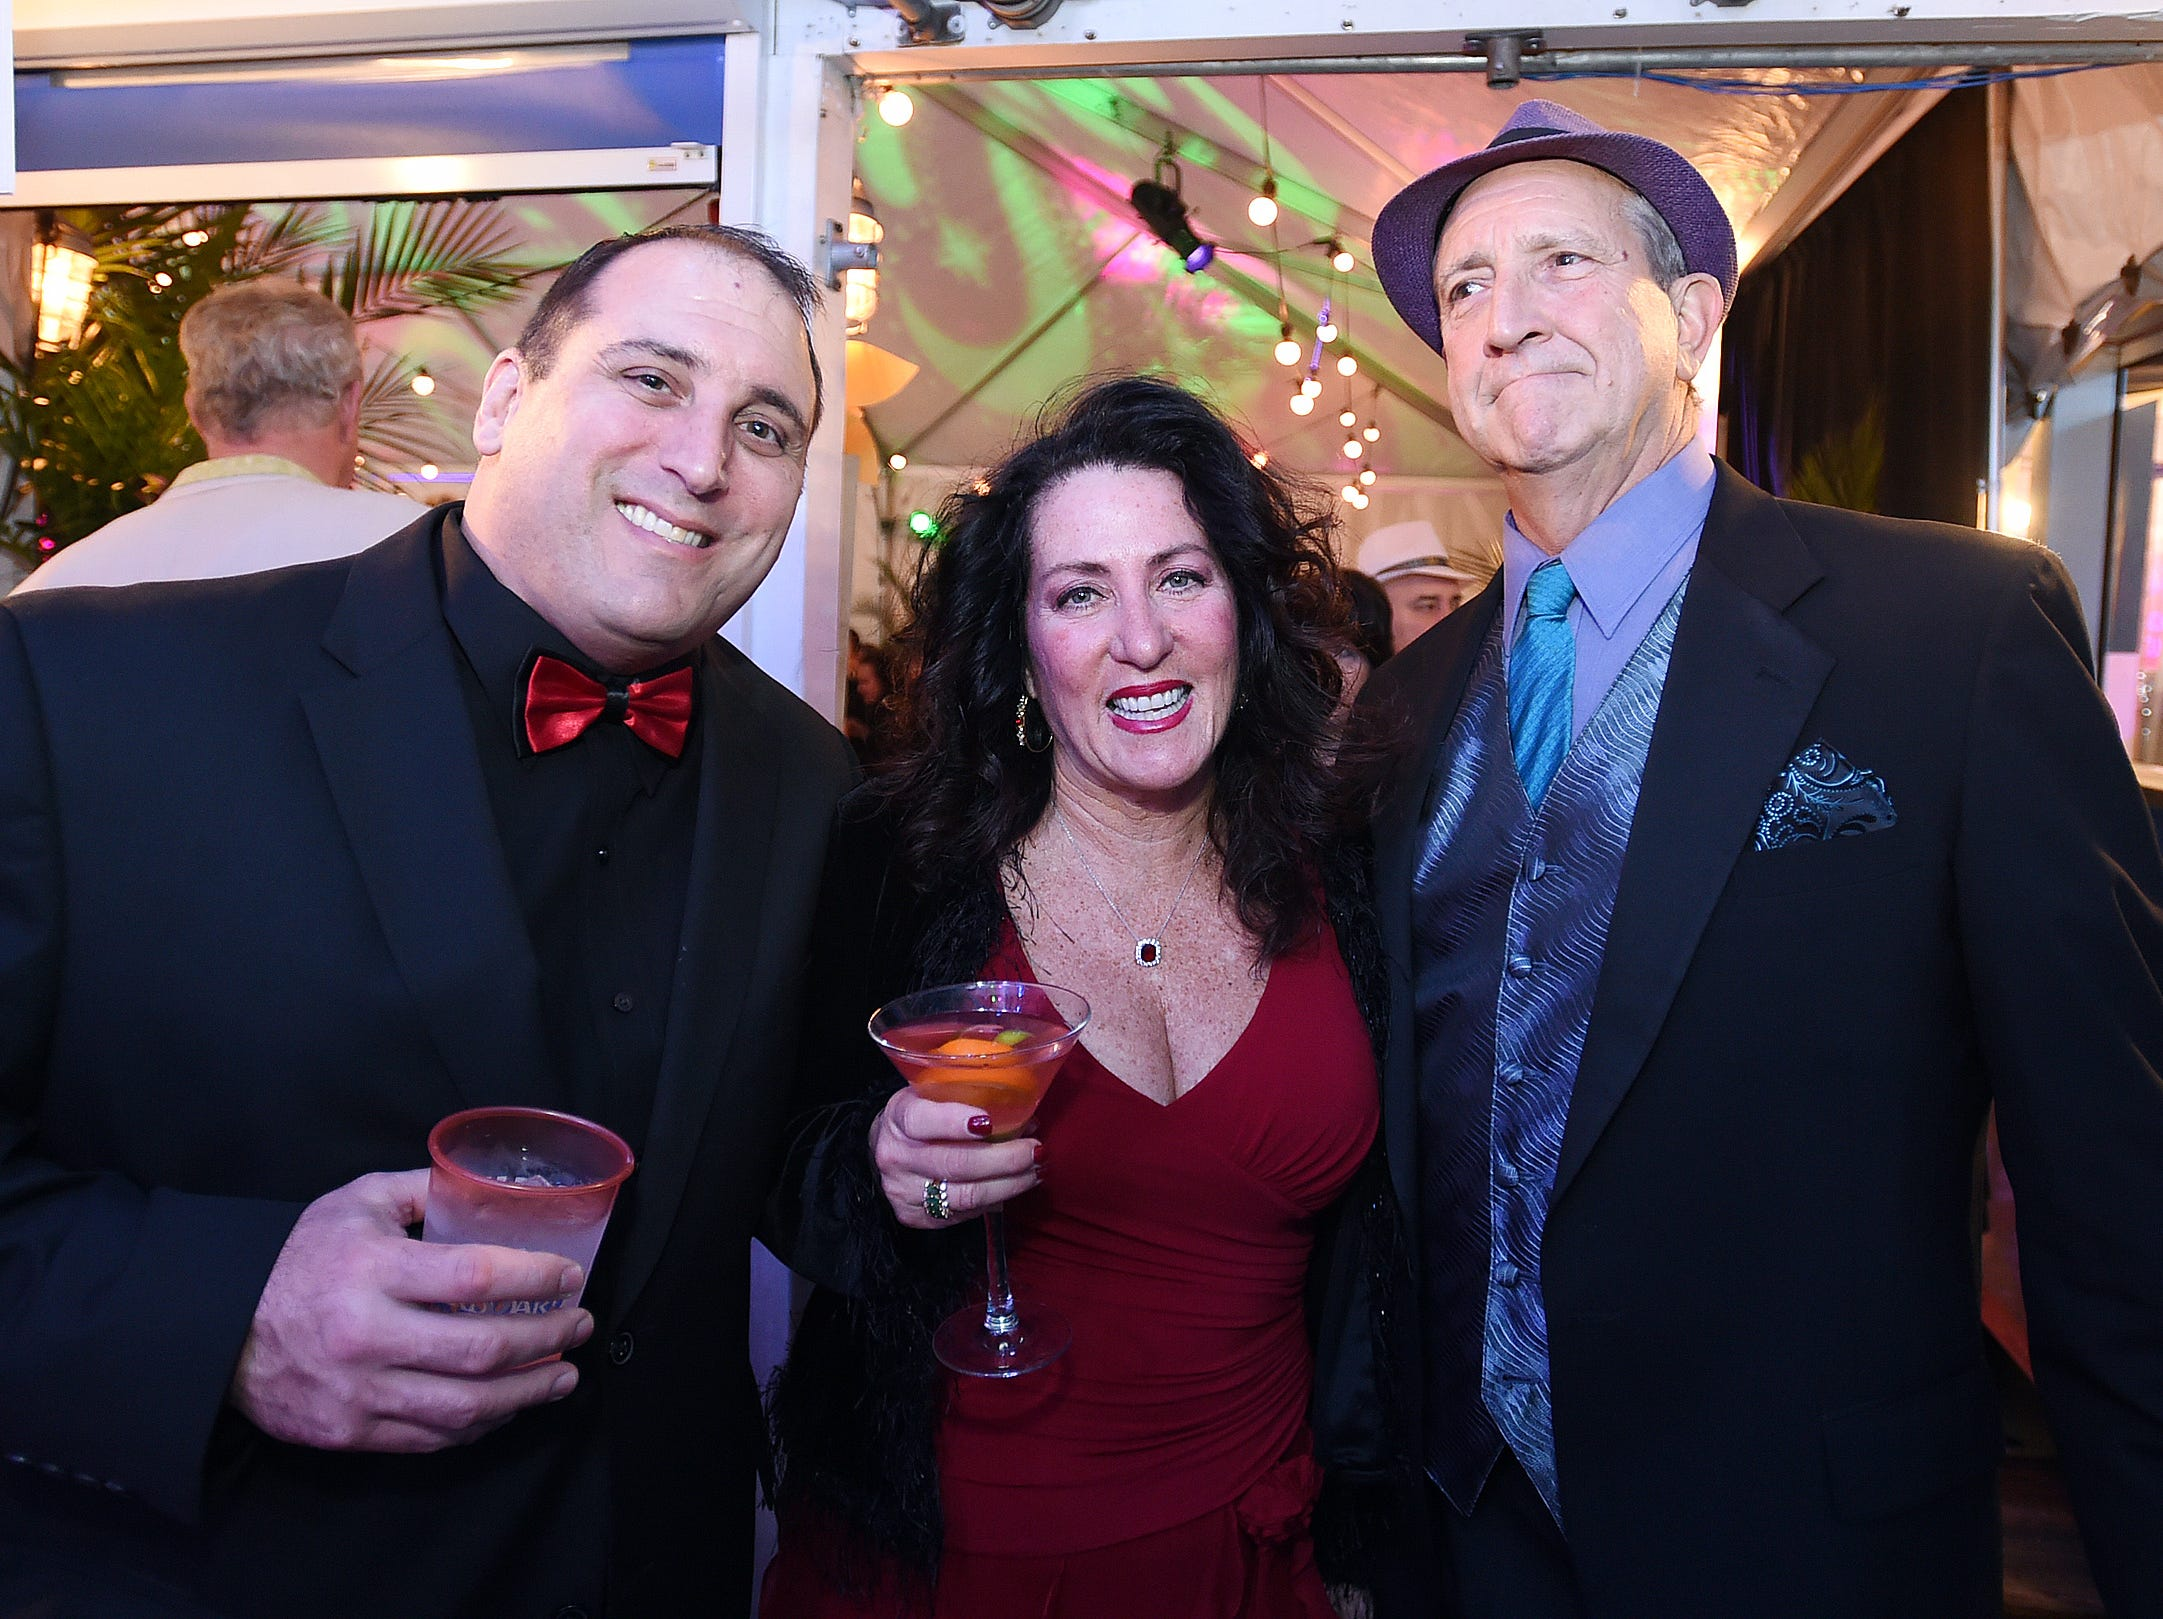 The Dewey Business Partnership hosted the 2019 Dewey Winter Gala on Feb. 23.